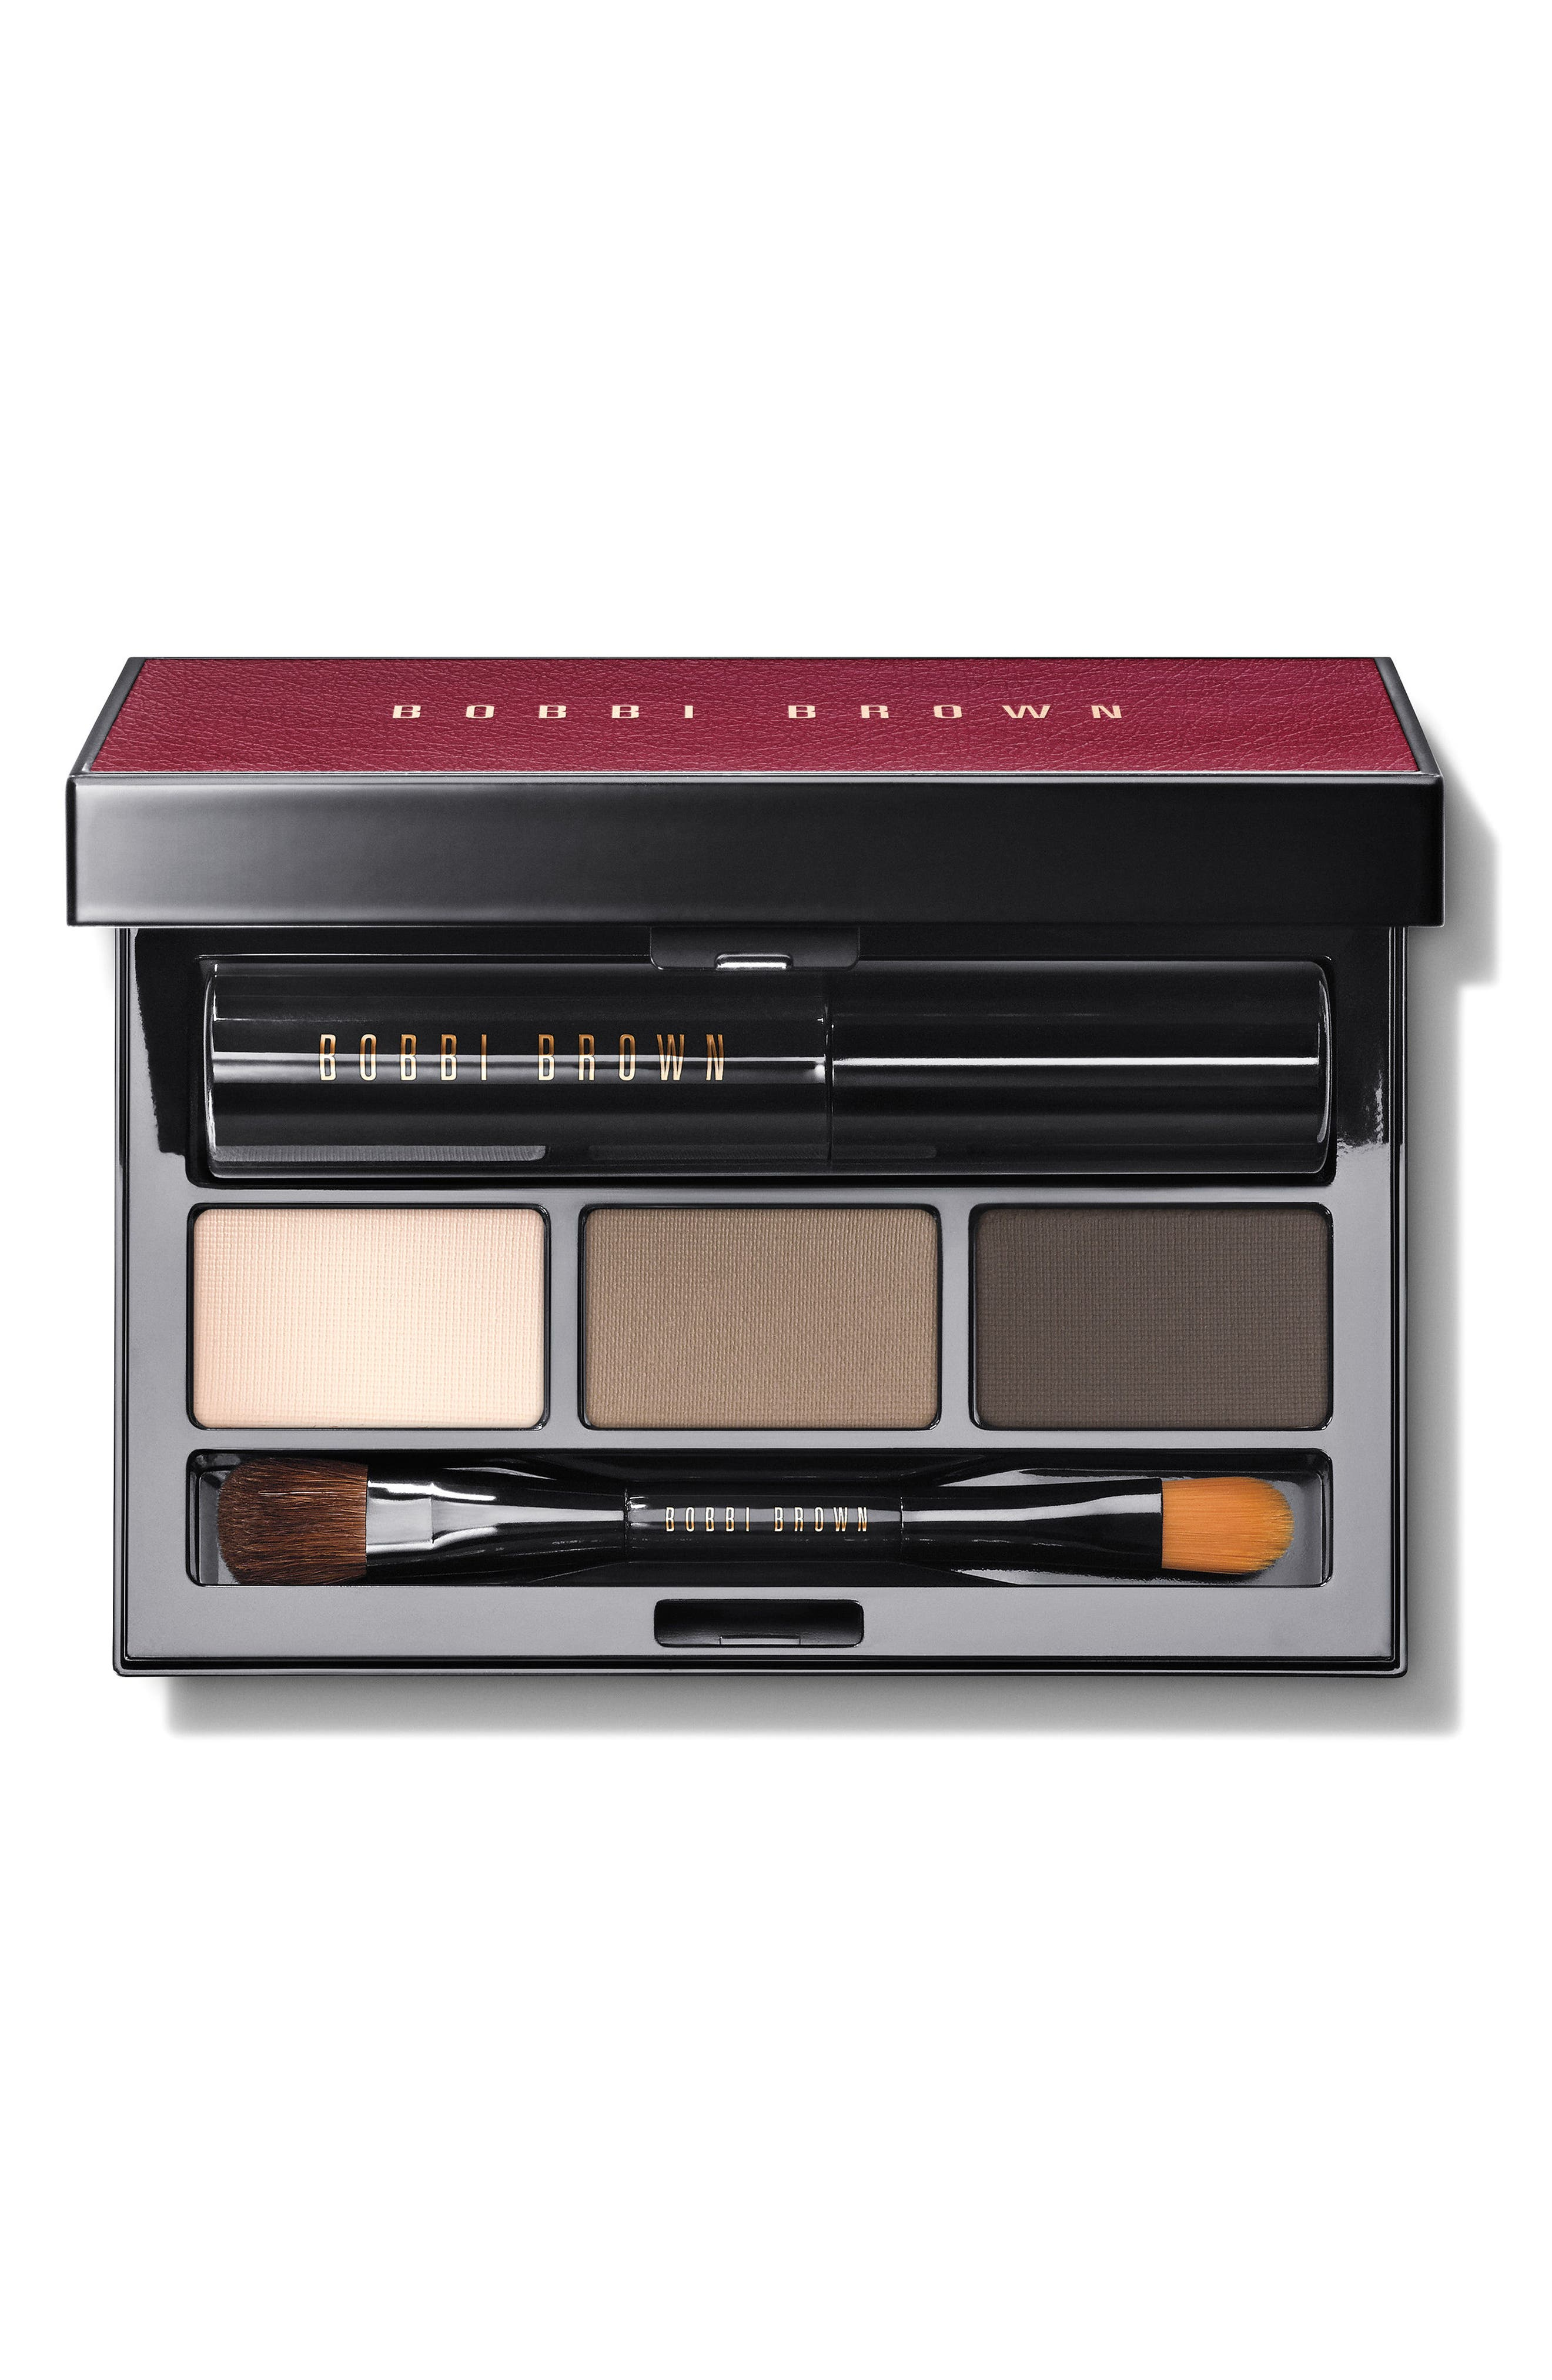 Bobbi Brown Soft Smoky Shadow & Mascara Palette ($81 Value)